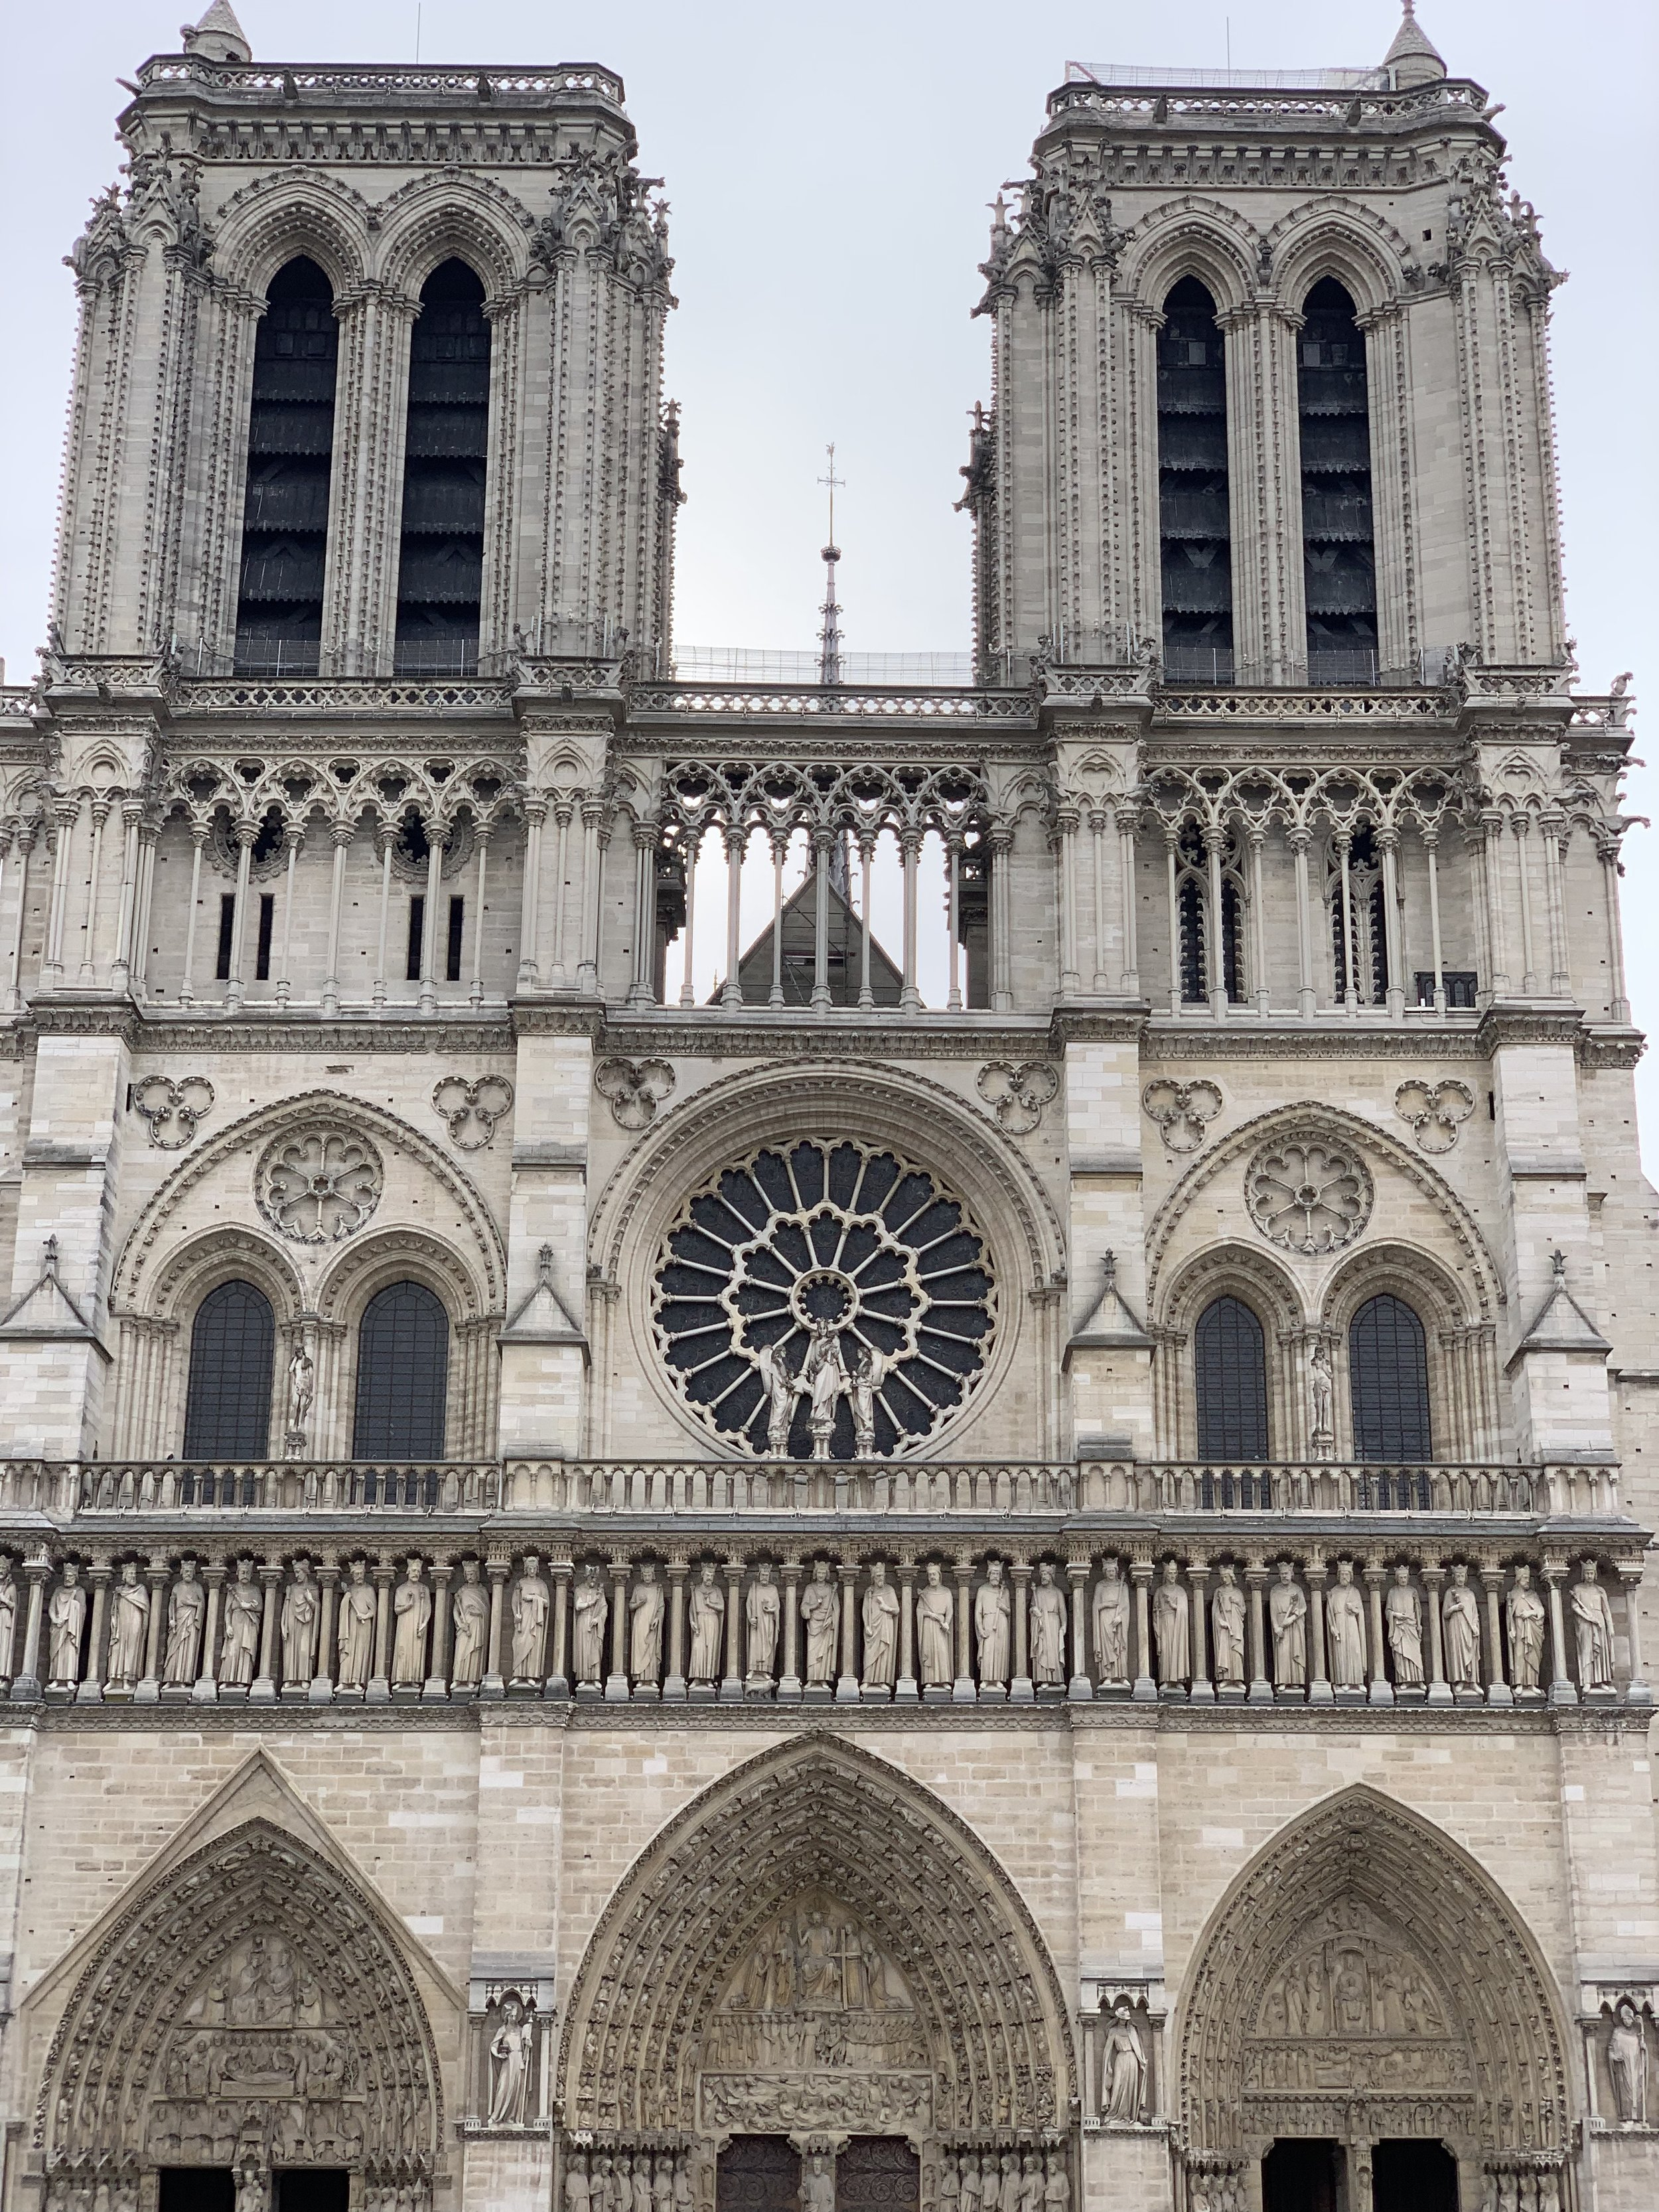 Notre Dame stone face